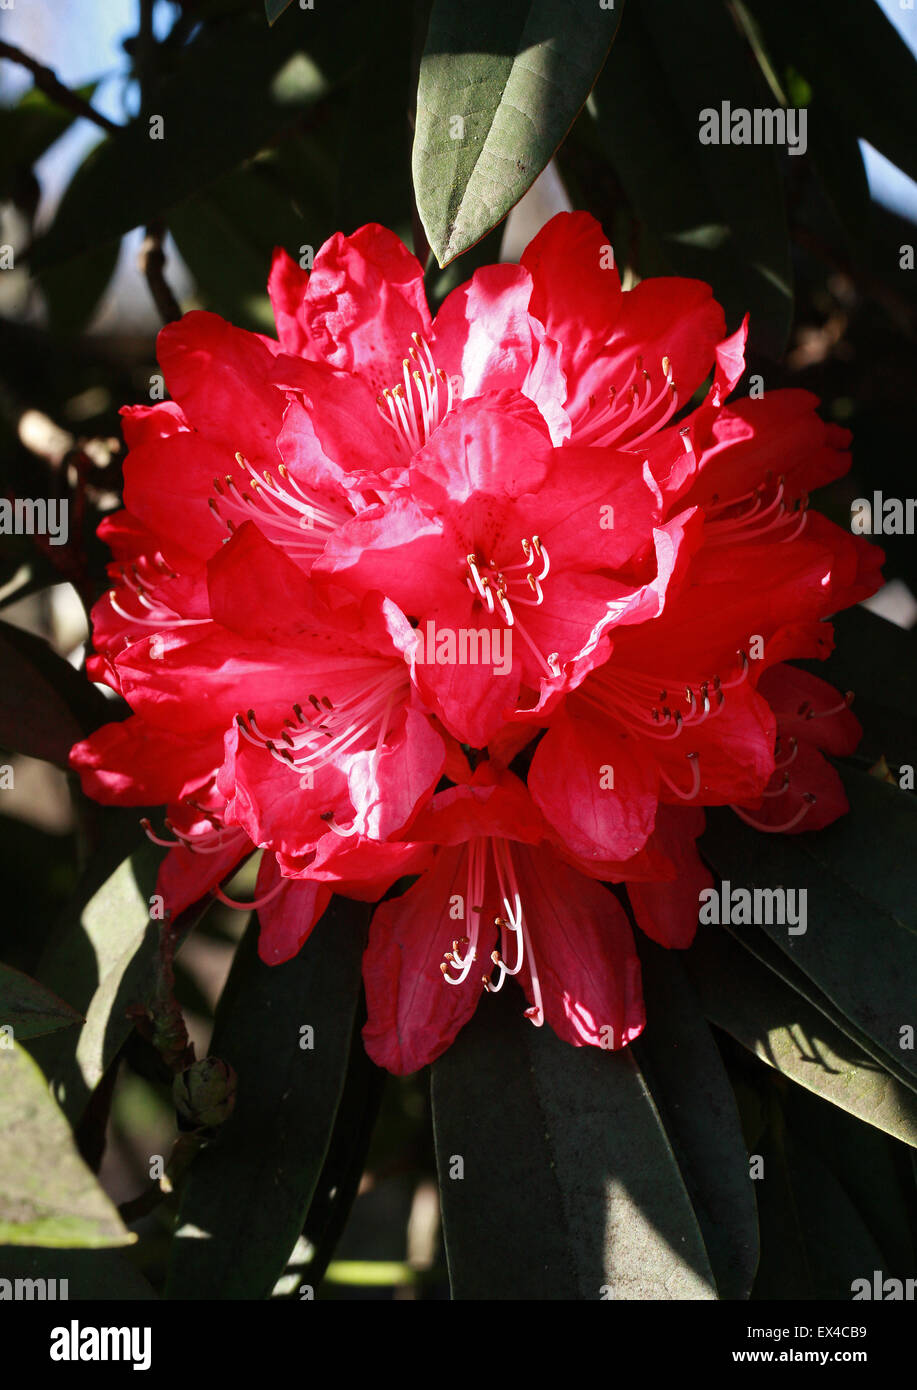 Tree Rhododendron, Rhododendron arboreum, Ericaceae. Temperate Asia. - Stock Image